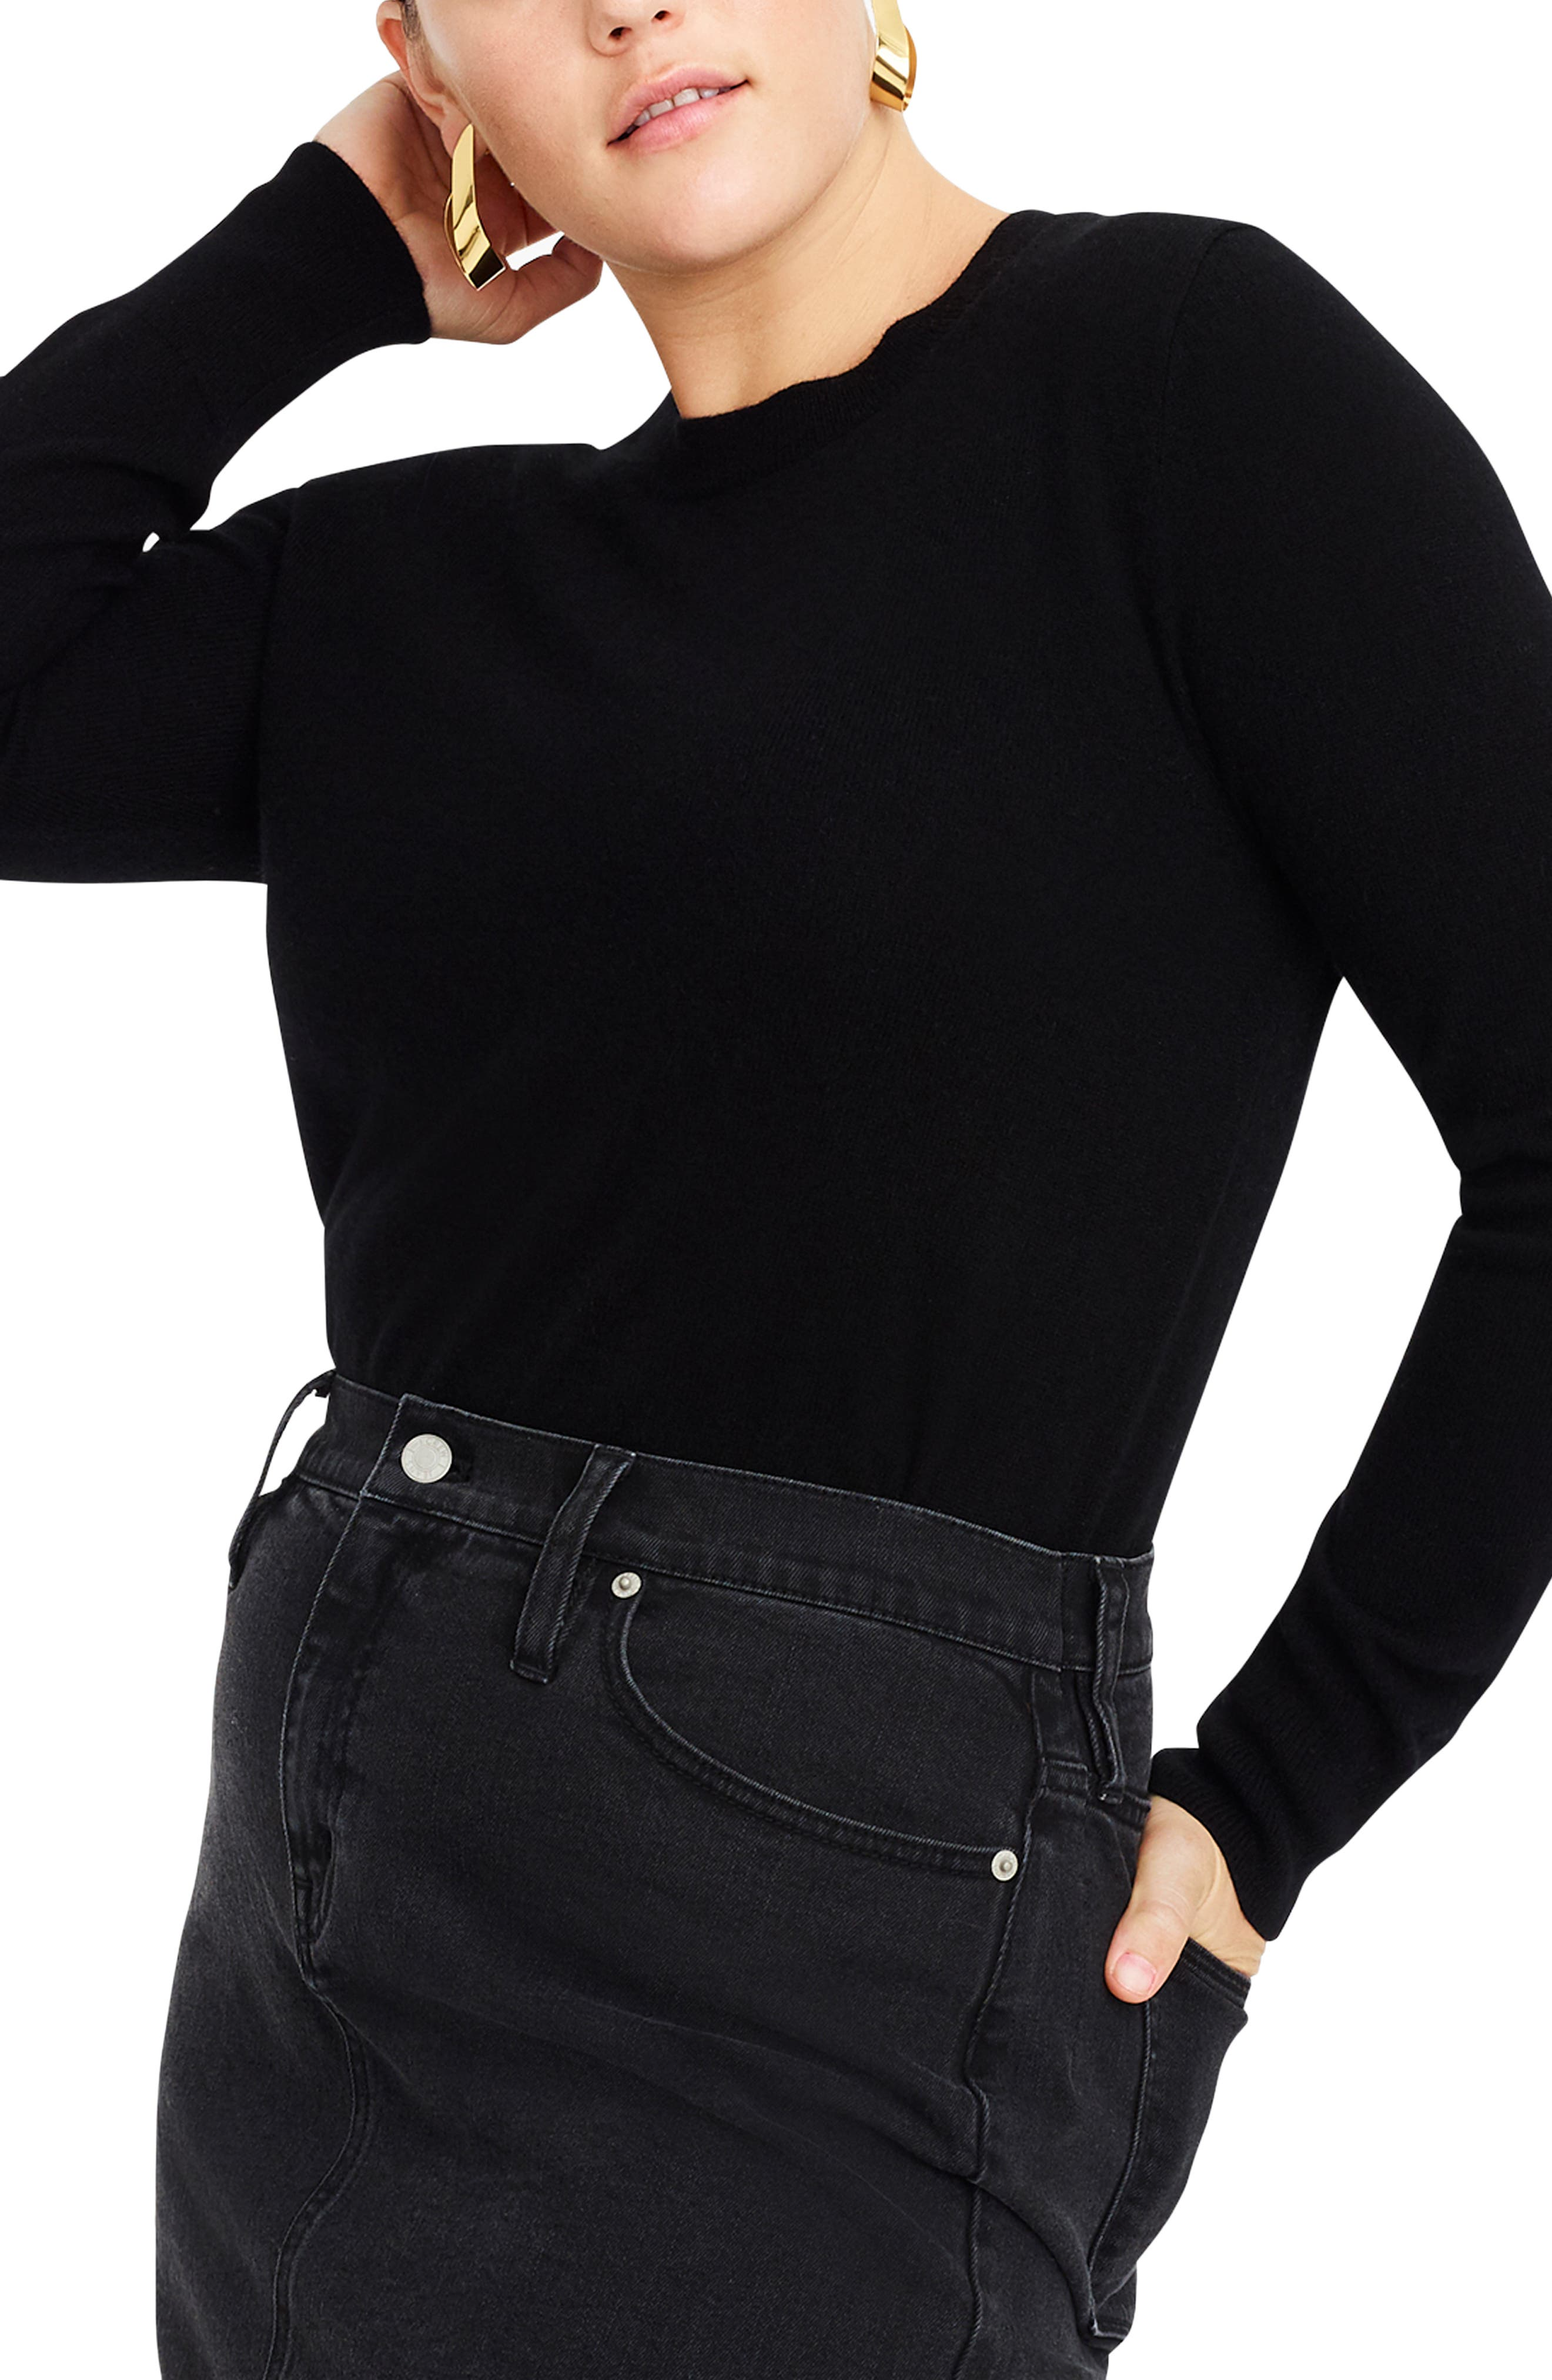 J.CREW,                             Crewneck Cashmere Sweater,                             Alternate thumbnail 2, color,                             BLACK